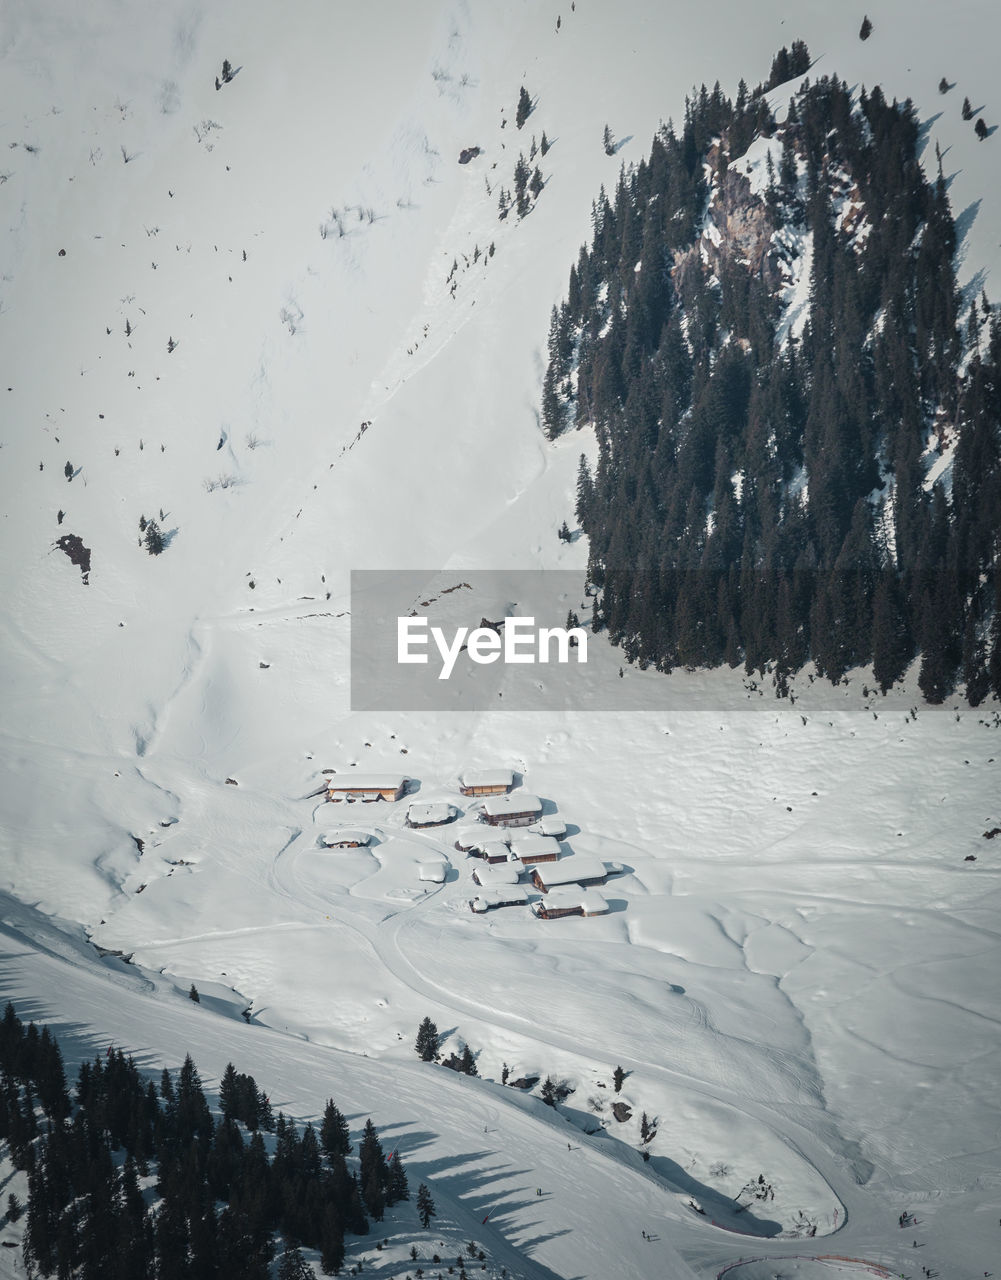 snow, winter, cold temperature, mountain, landscape, nature, tree, scenics - nature, environment, beauty in nature, skiing, winter sport, covering, holiday, sport, plant, trip, travel, snowcapped mountain, range